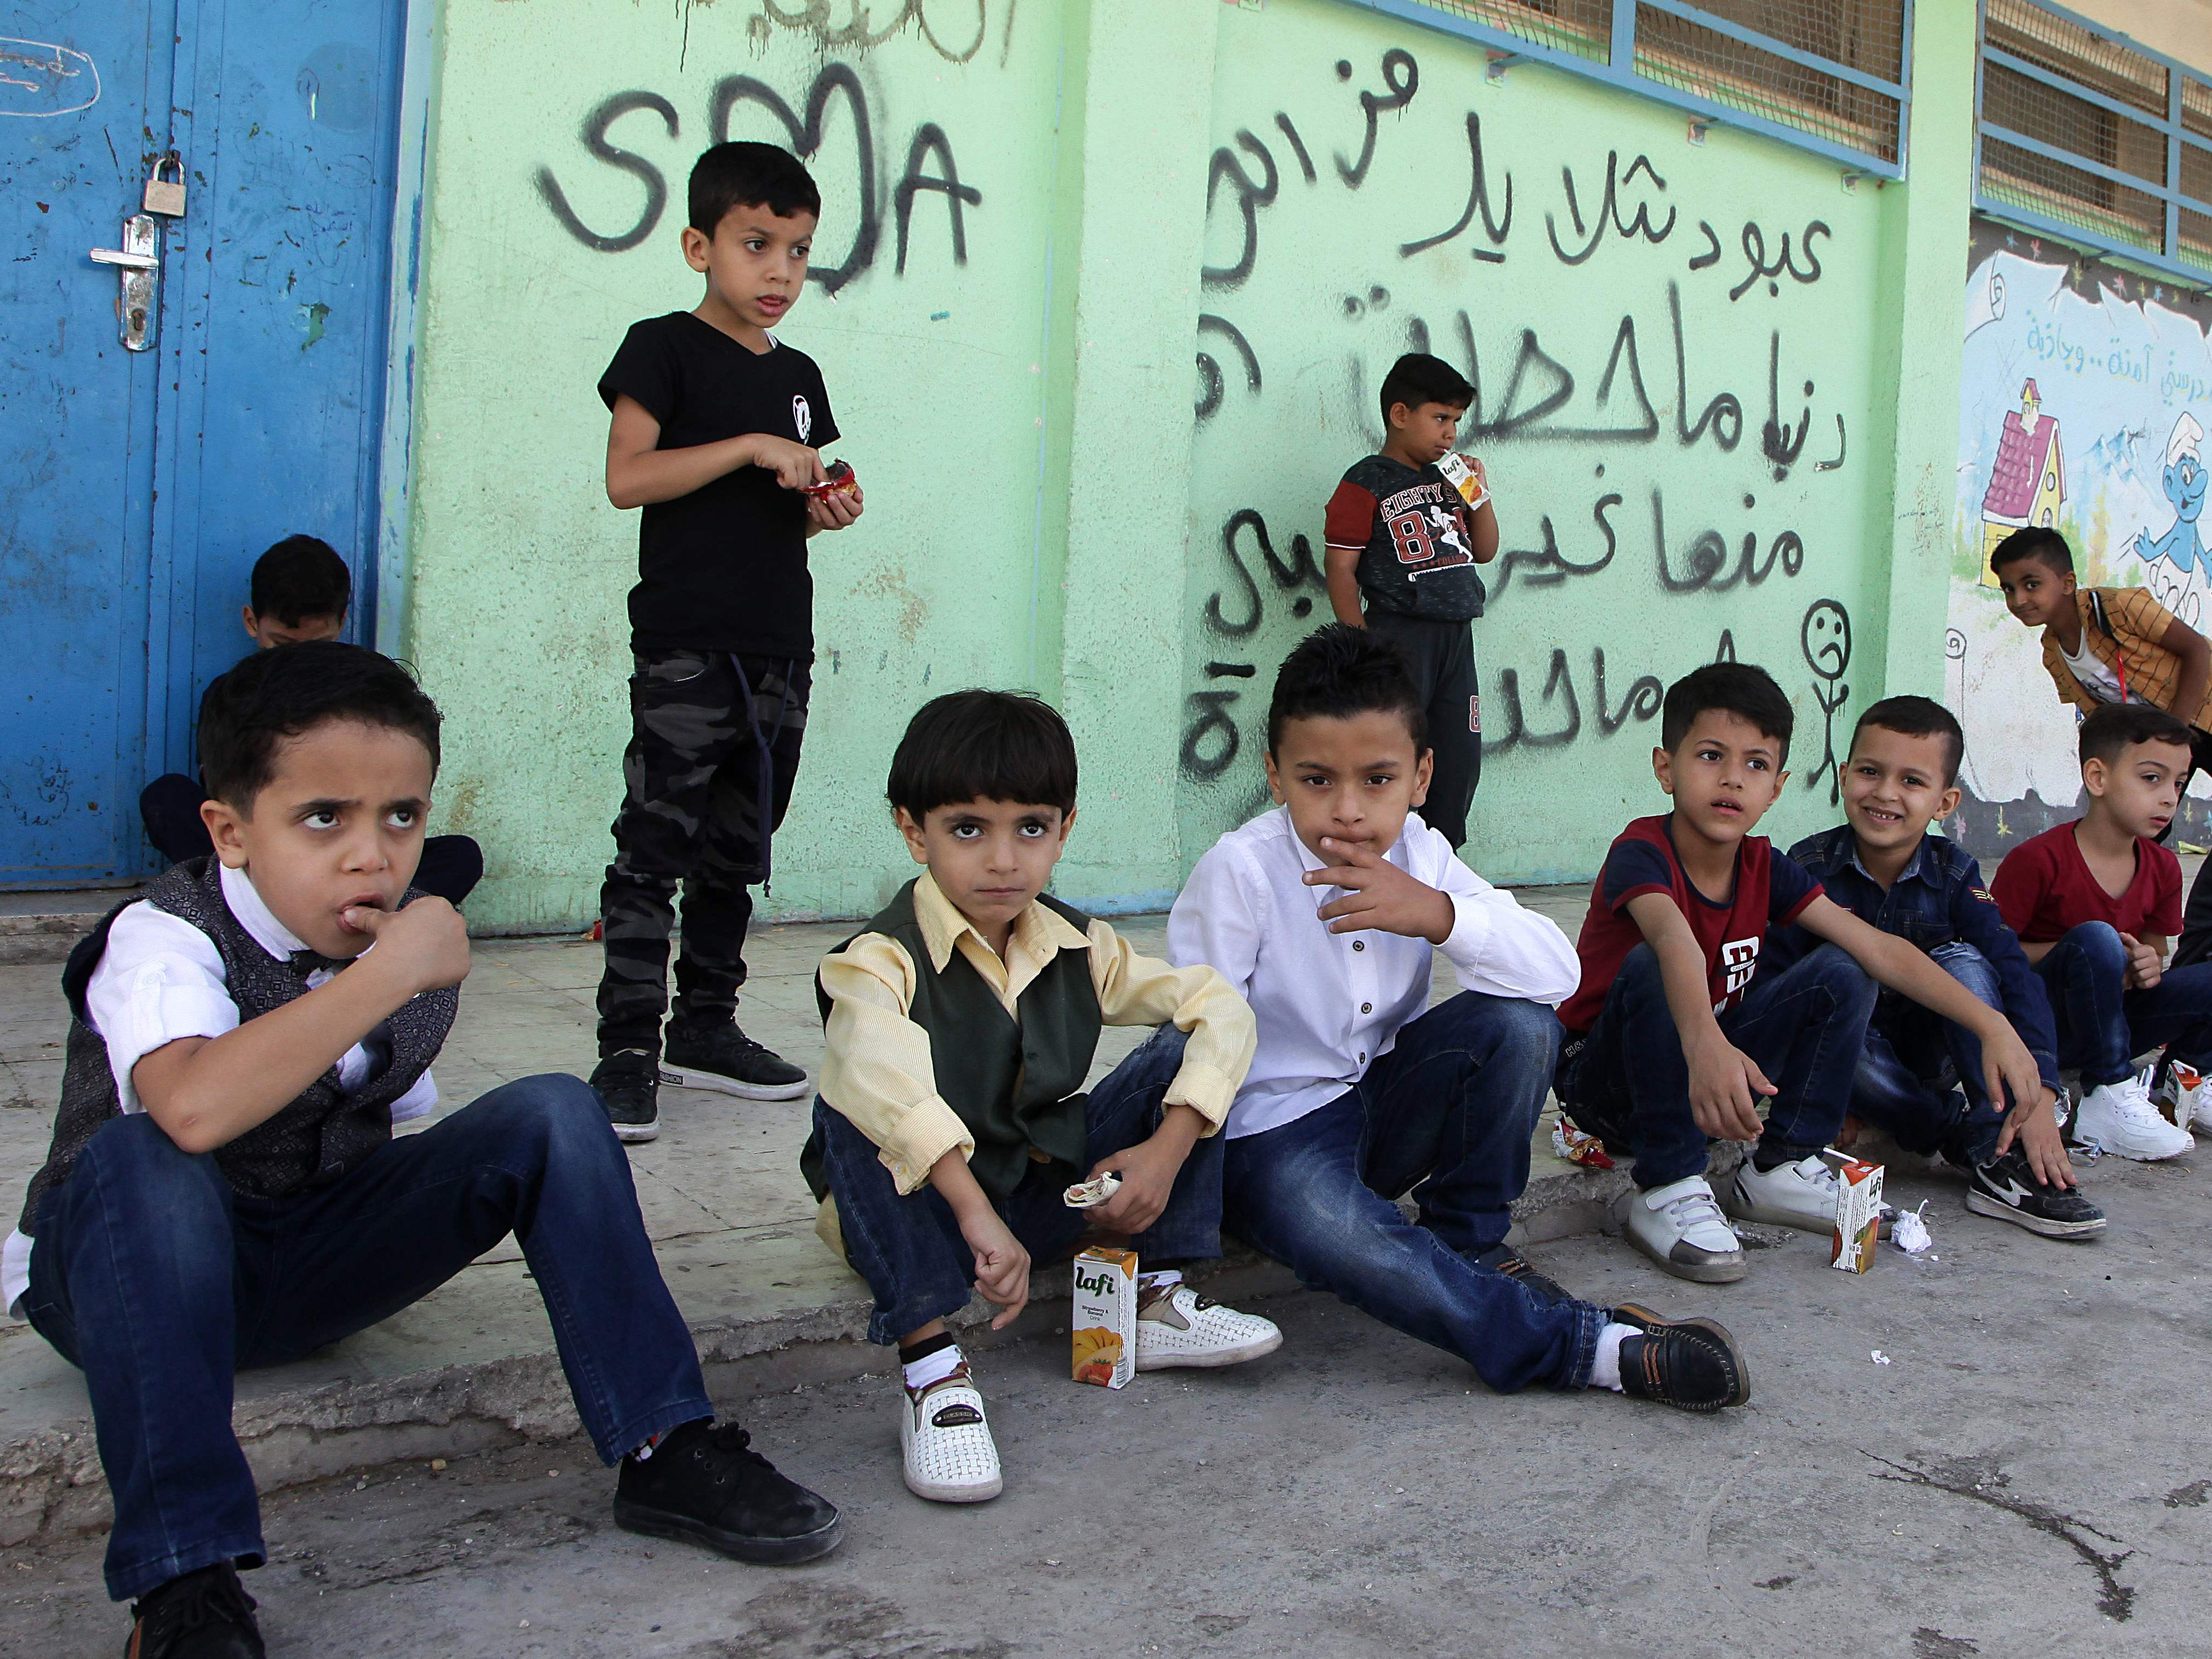 "Palestinian refugee pupils wait outside a United nations Relief and Works Agency's (UNRWA, UN agency for Palestinian refugees) school, in the Al-Baqaa Palestinian refugee camp, near Amman, on 2 september 2018. - The UN agency for Palestinian refugees (UNRWA) has been a lifeline for millions of Palestinians since it was set up nearly 70 years ago. On August 31, the United States, by far the biggest contributor to the agency, announced it was halting its funding to the organisation, which it labelled ""irredeemably flawed"". (Photo by AHMAD ABDO / AFP)AHMAD ABDO/AFP/Getty Images ORIG FILE ID: AFP_18S64U"